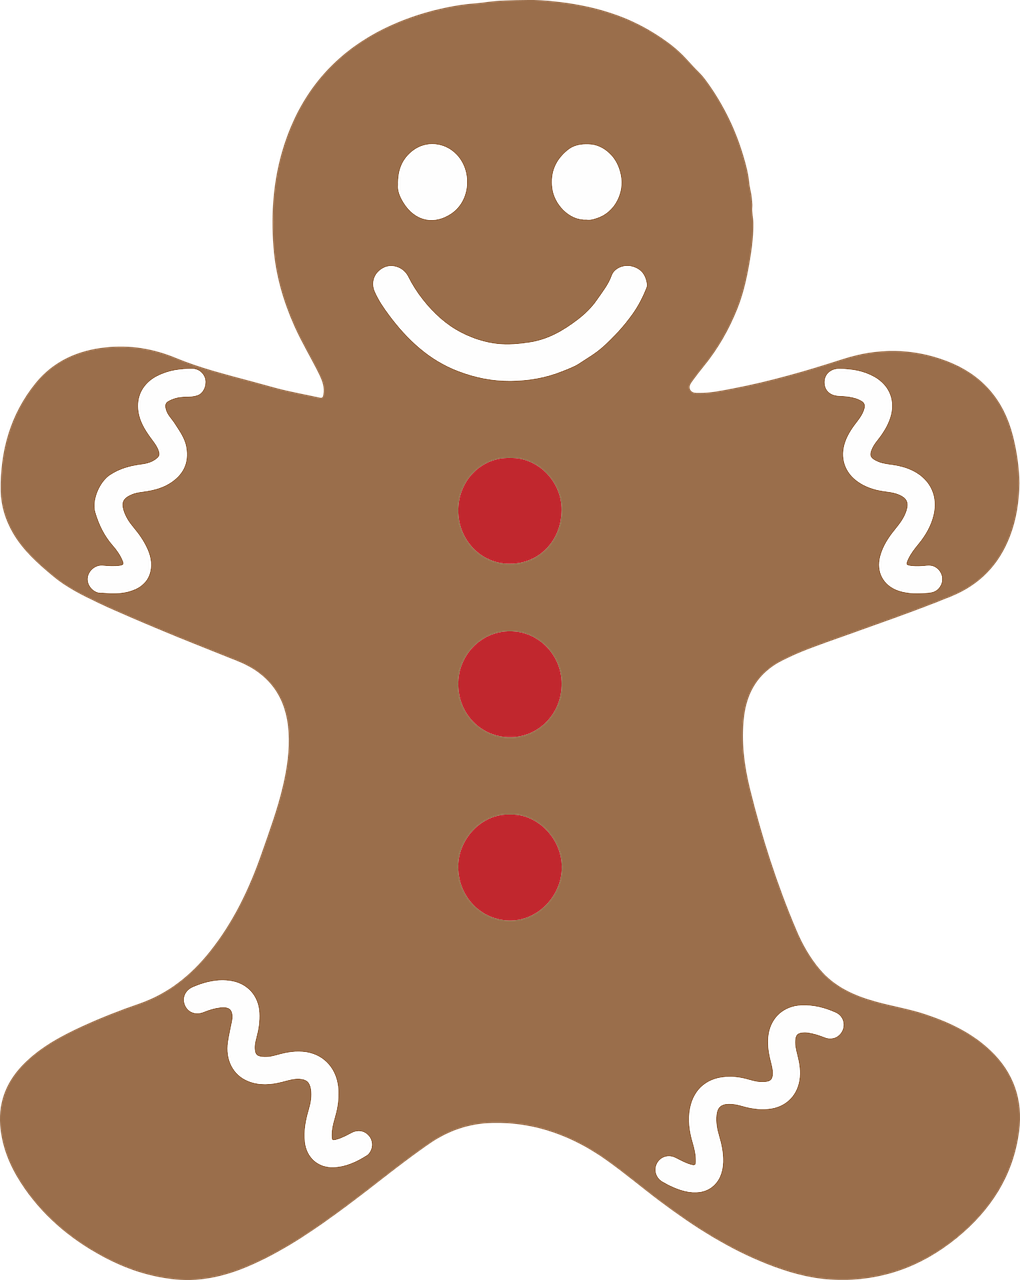 anthropomorphic cookie decoration free photo